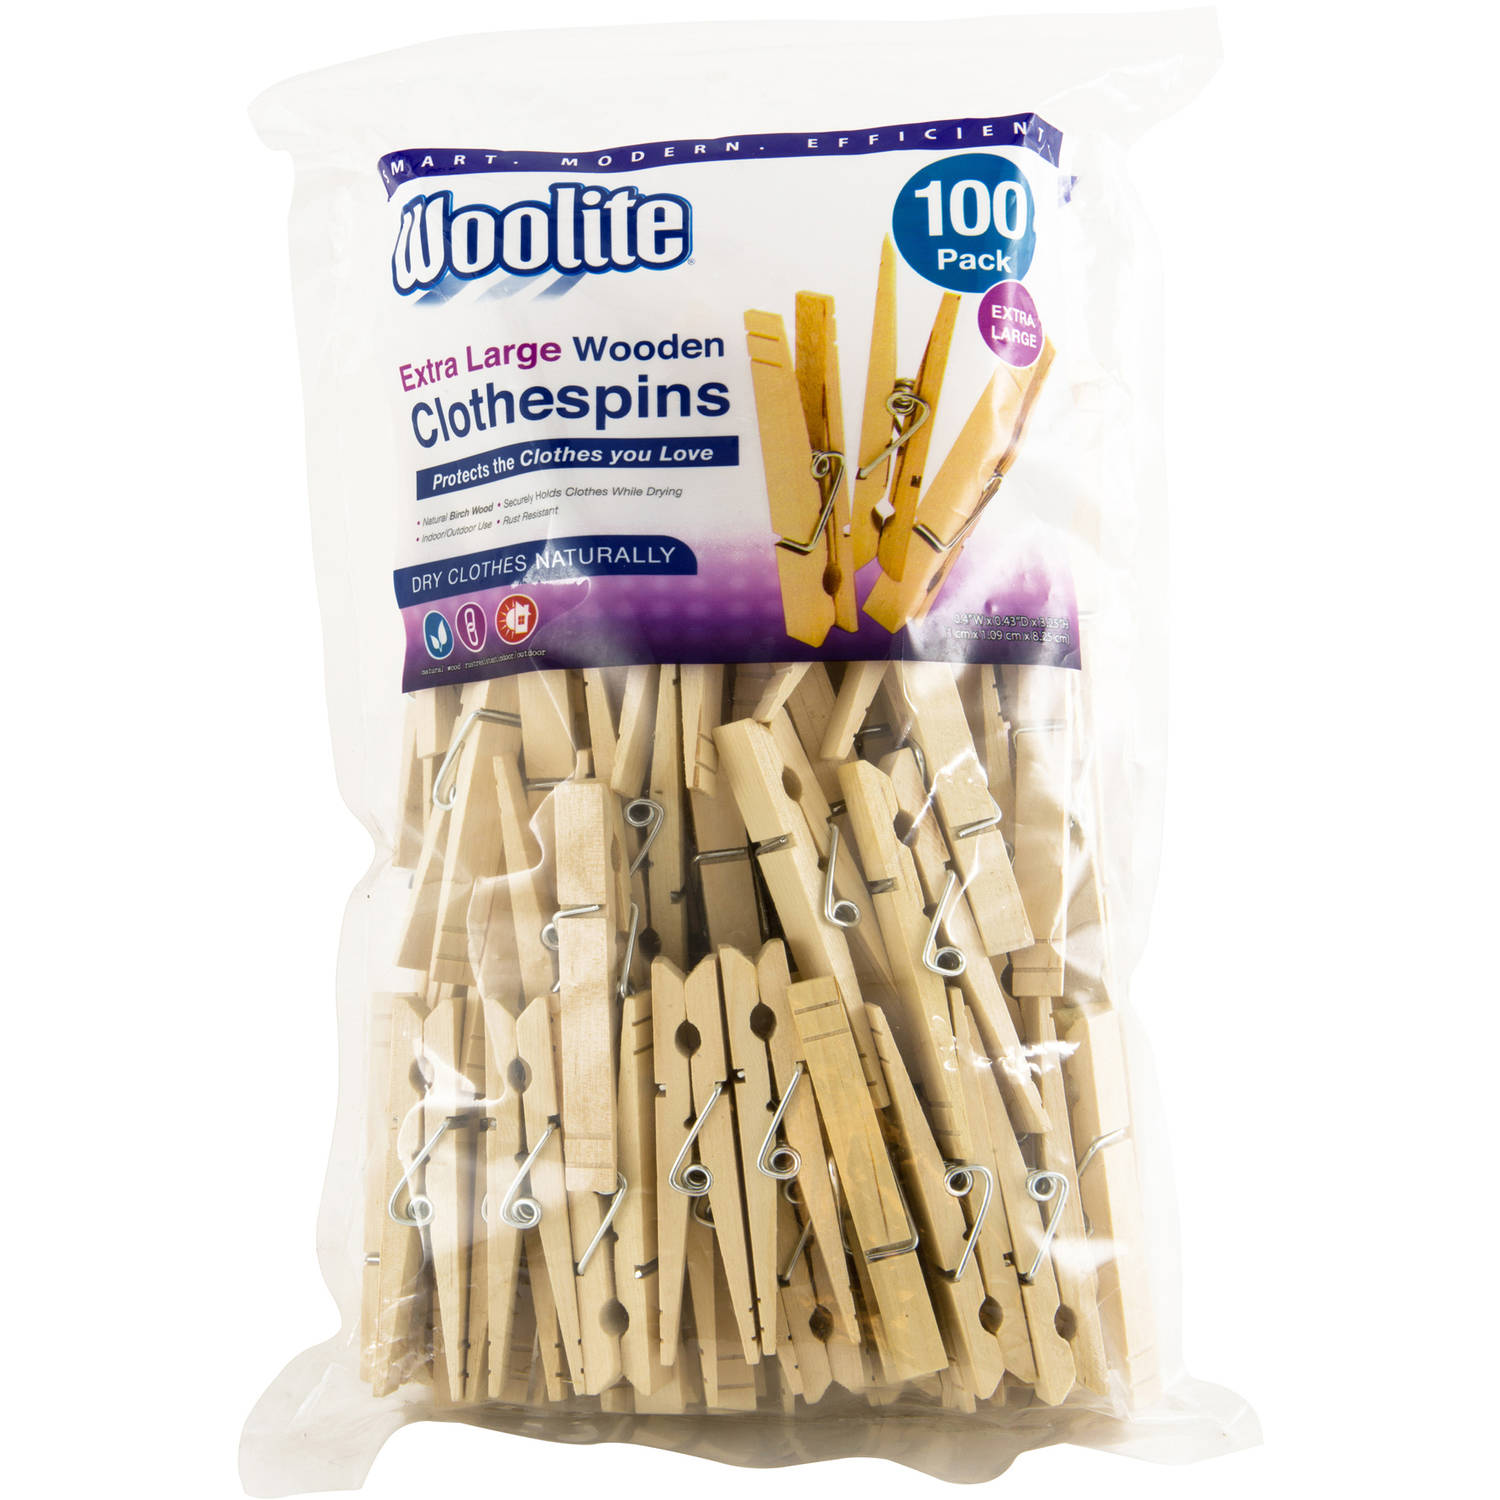 Woolite Extra Large Wooden Clothespins (Pack Of 100)